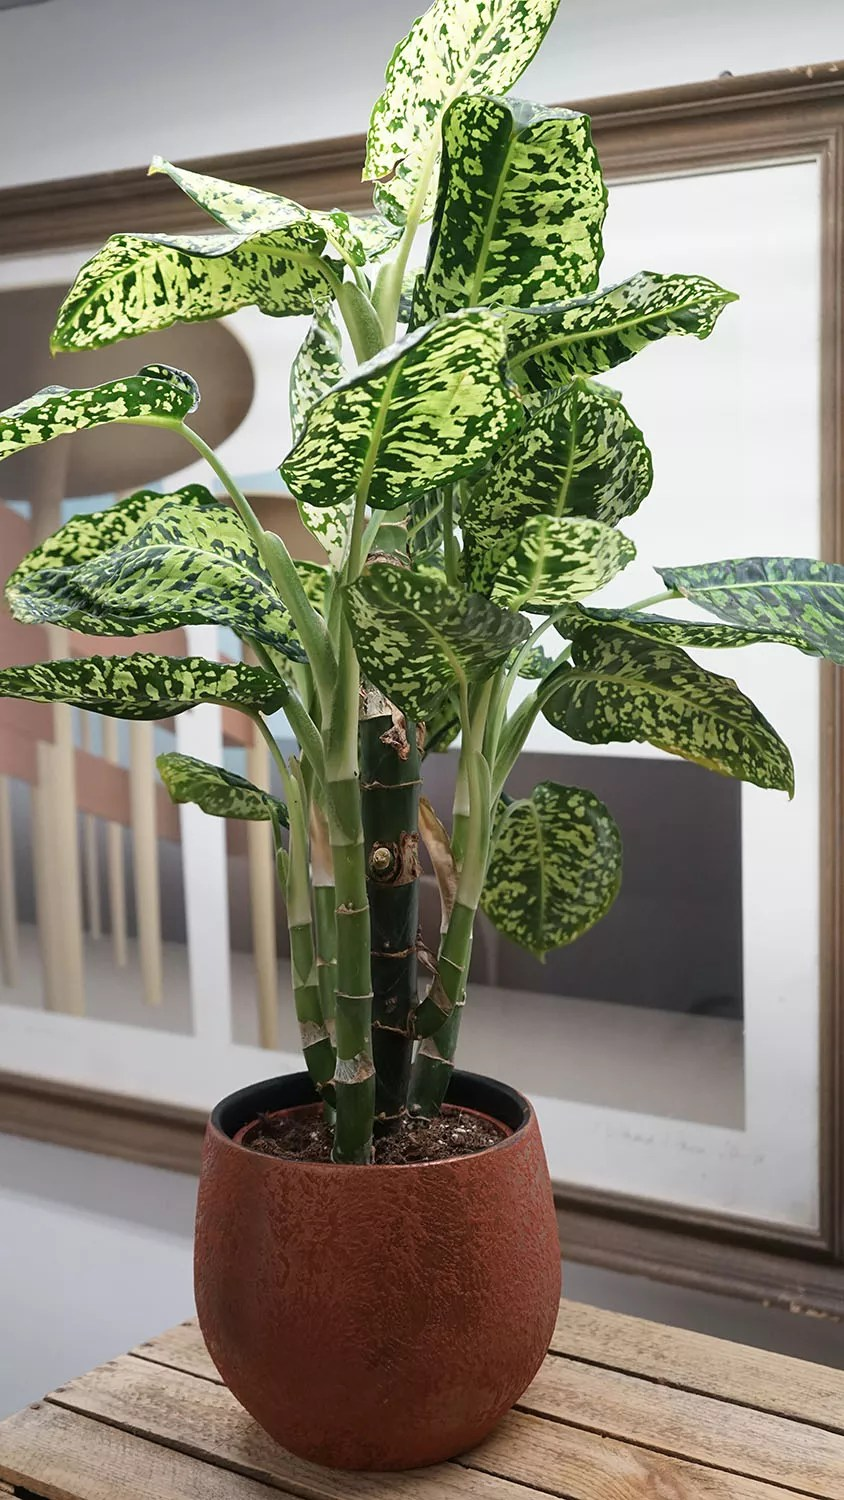 Indoor Plants For The Office Freckle Face Dieffenbachia Indoor House Plants Office Plants